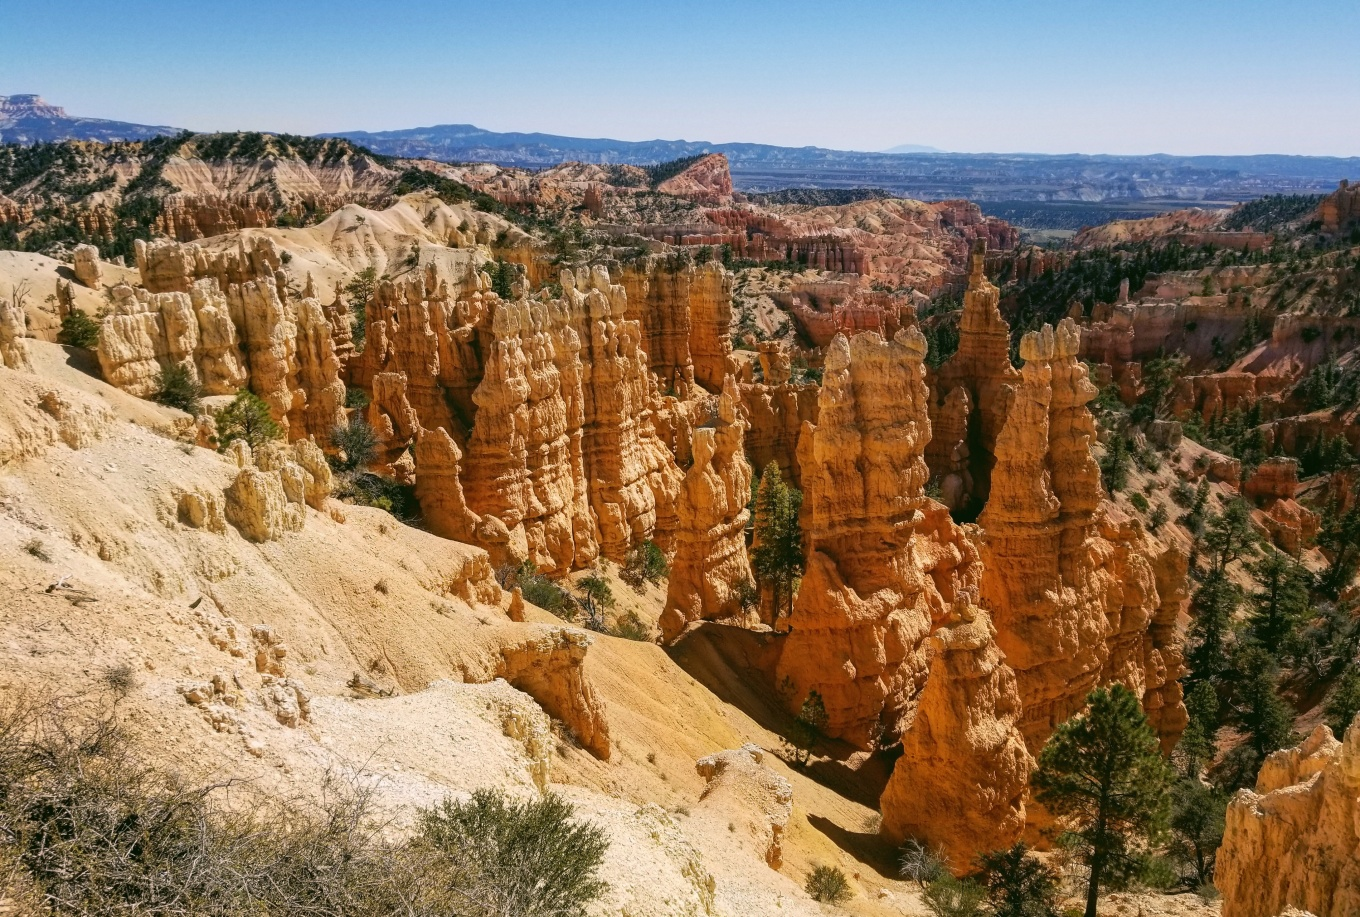 The hoodoos of Fairyland Canyon at Bryce Canyon National Park, UT